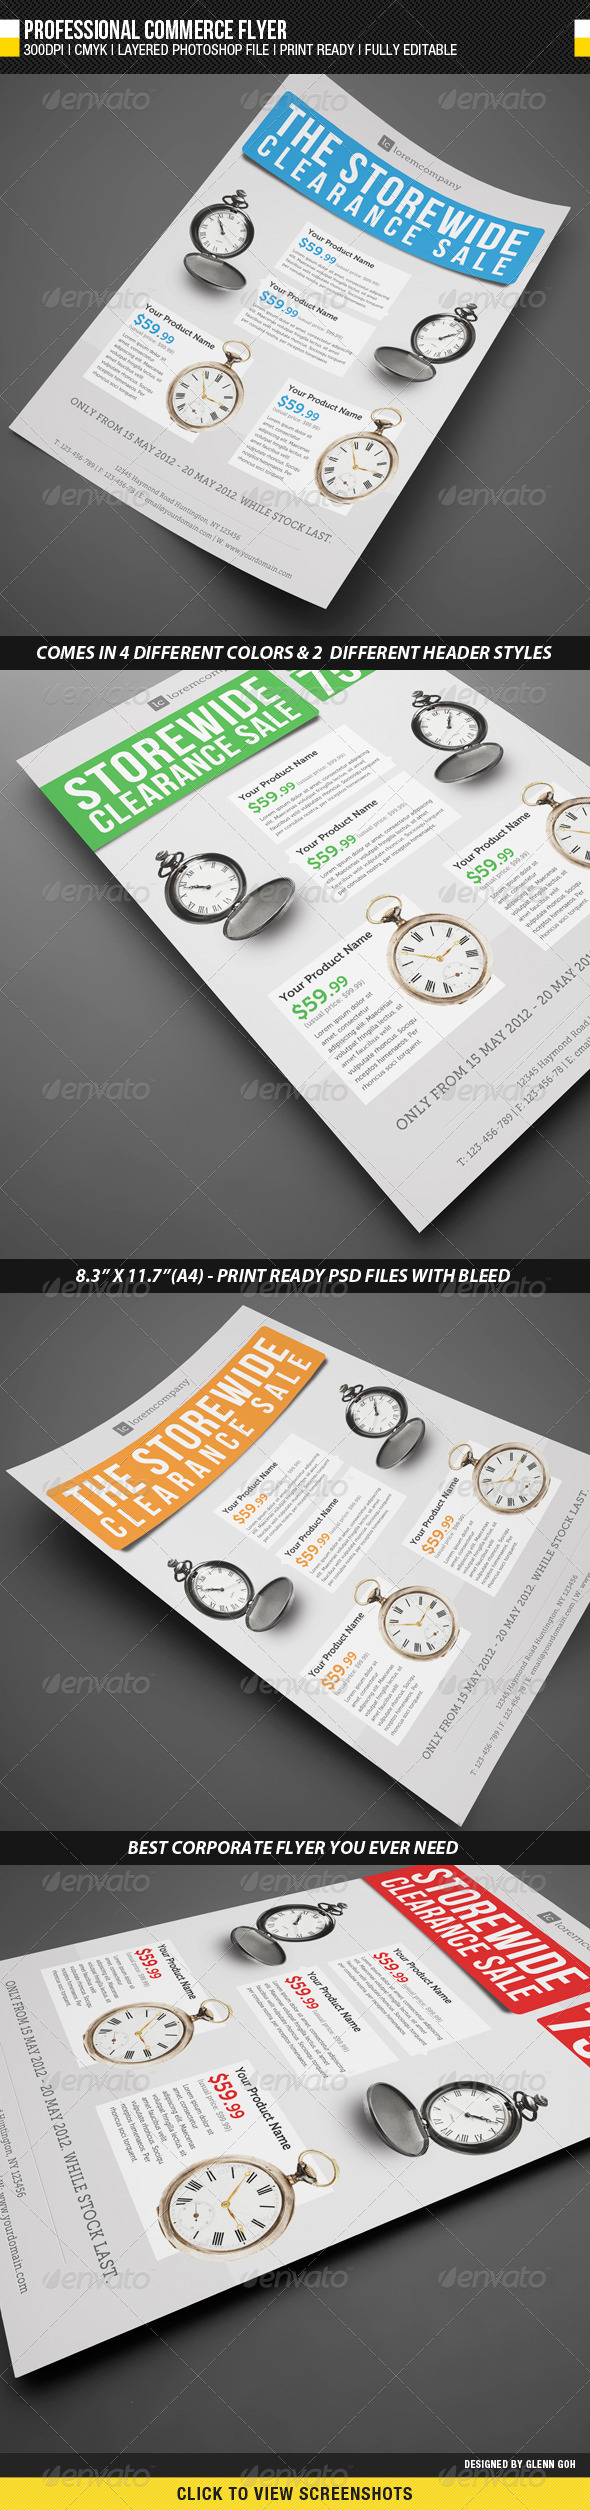 Professional Commerce Flyer - Commerce Flyers